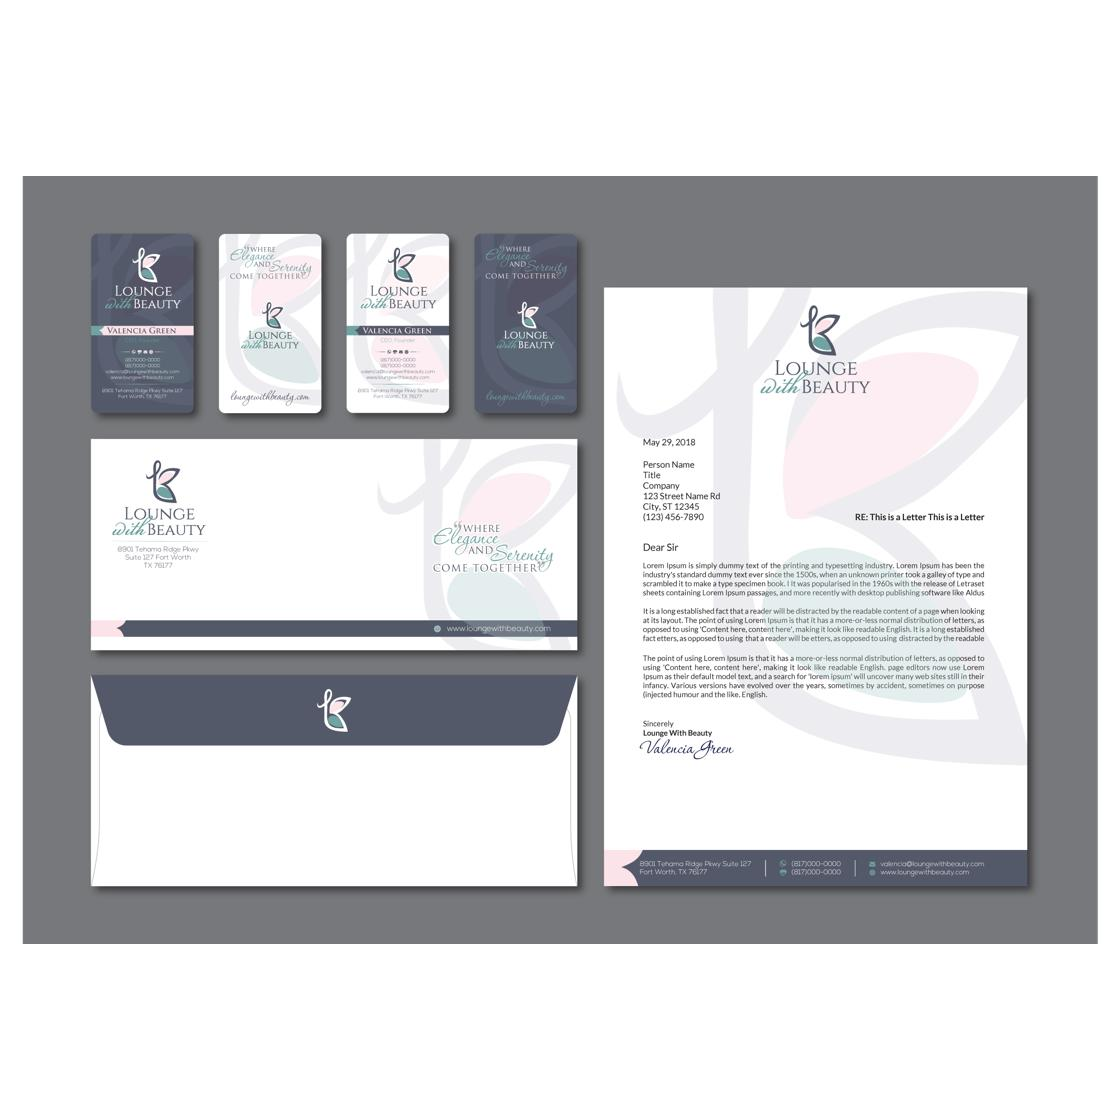 custom letterhead and stationery design by Dhir